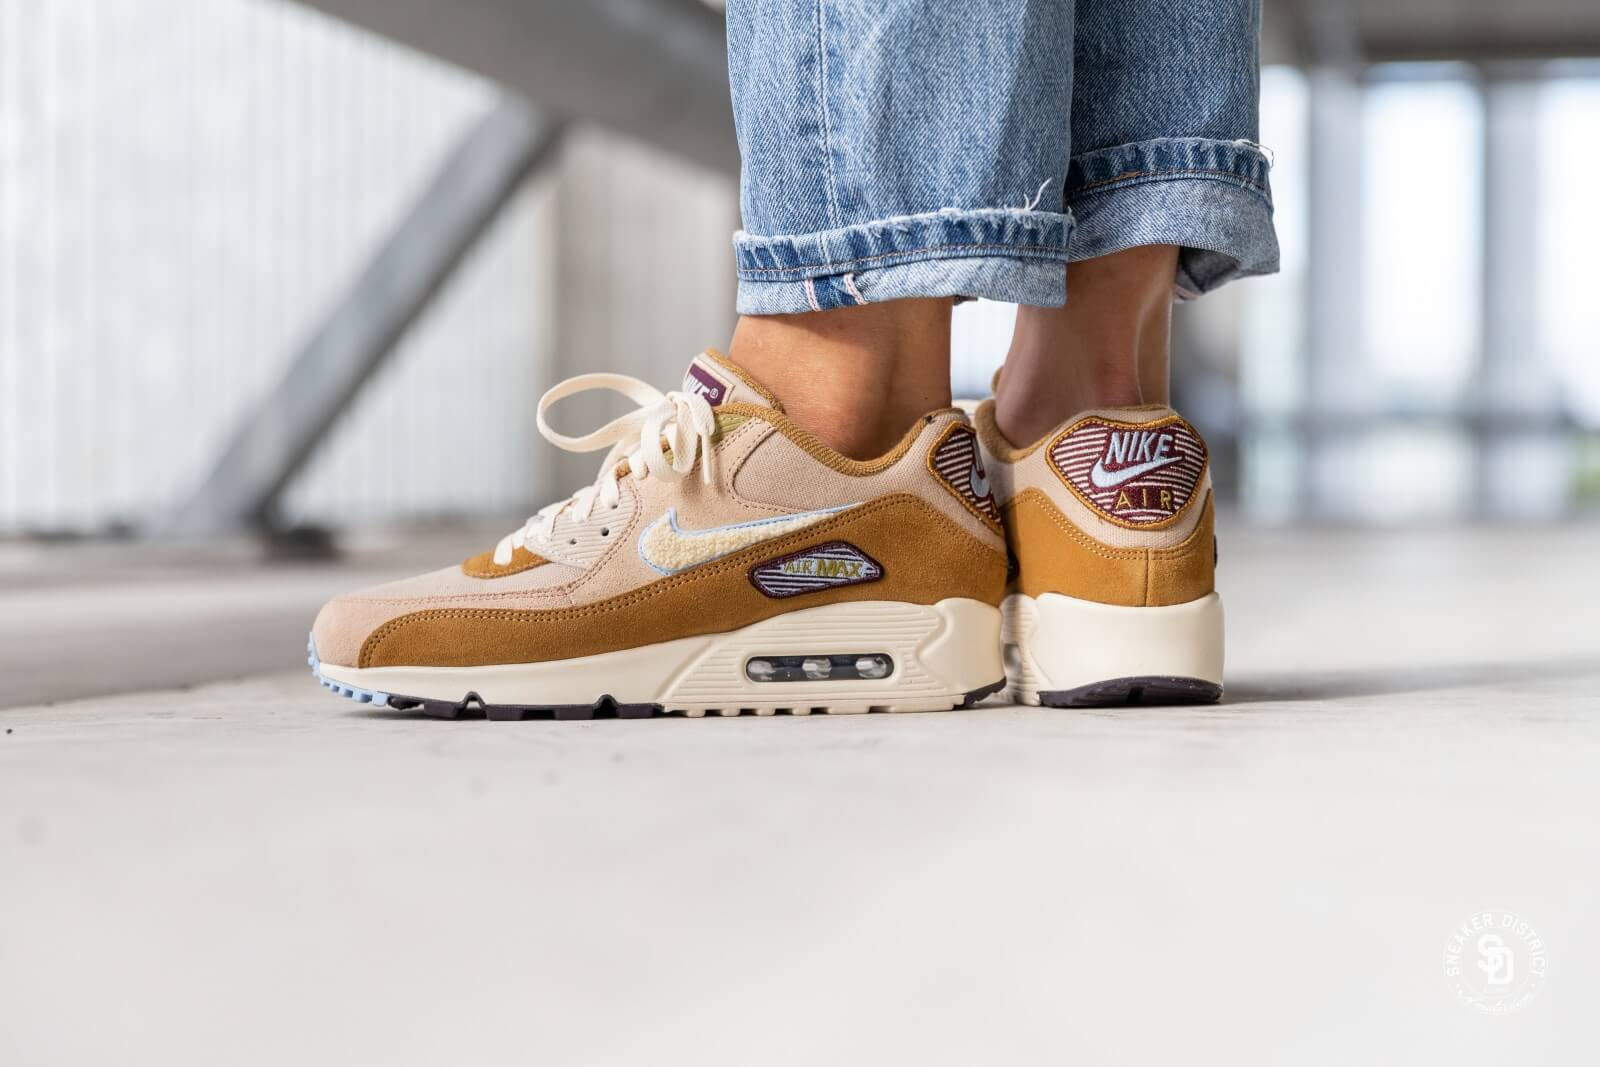 hot sale online 05c73 03a65 ... get nike air max 90 premium se muted bronze light cream royal tint  07213 ae623